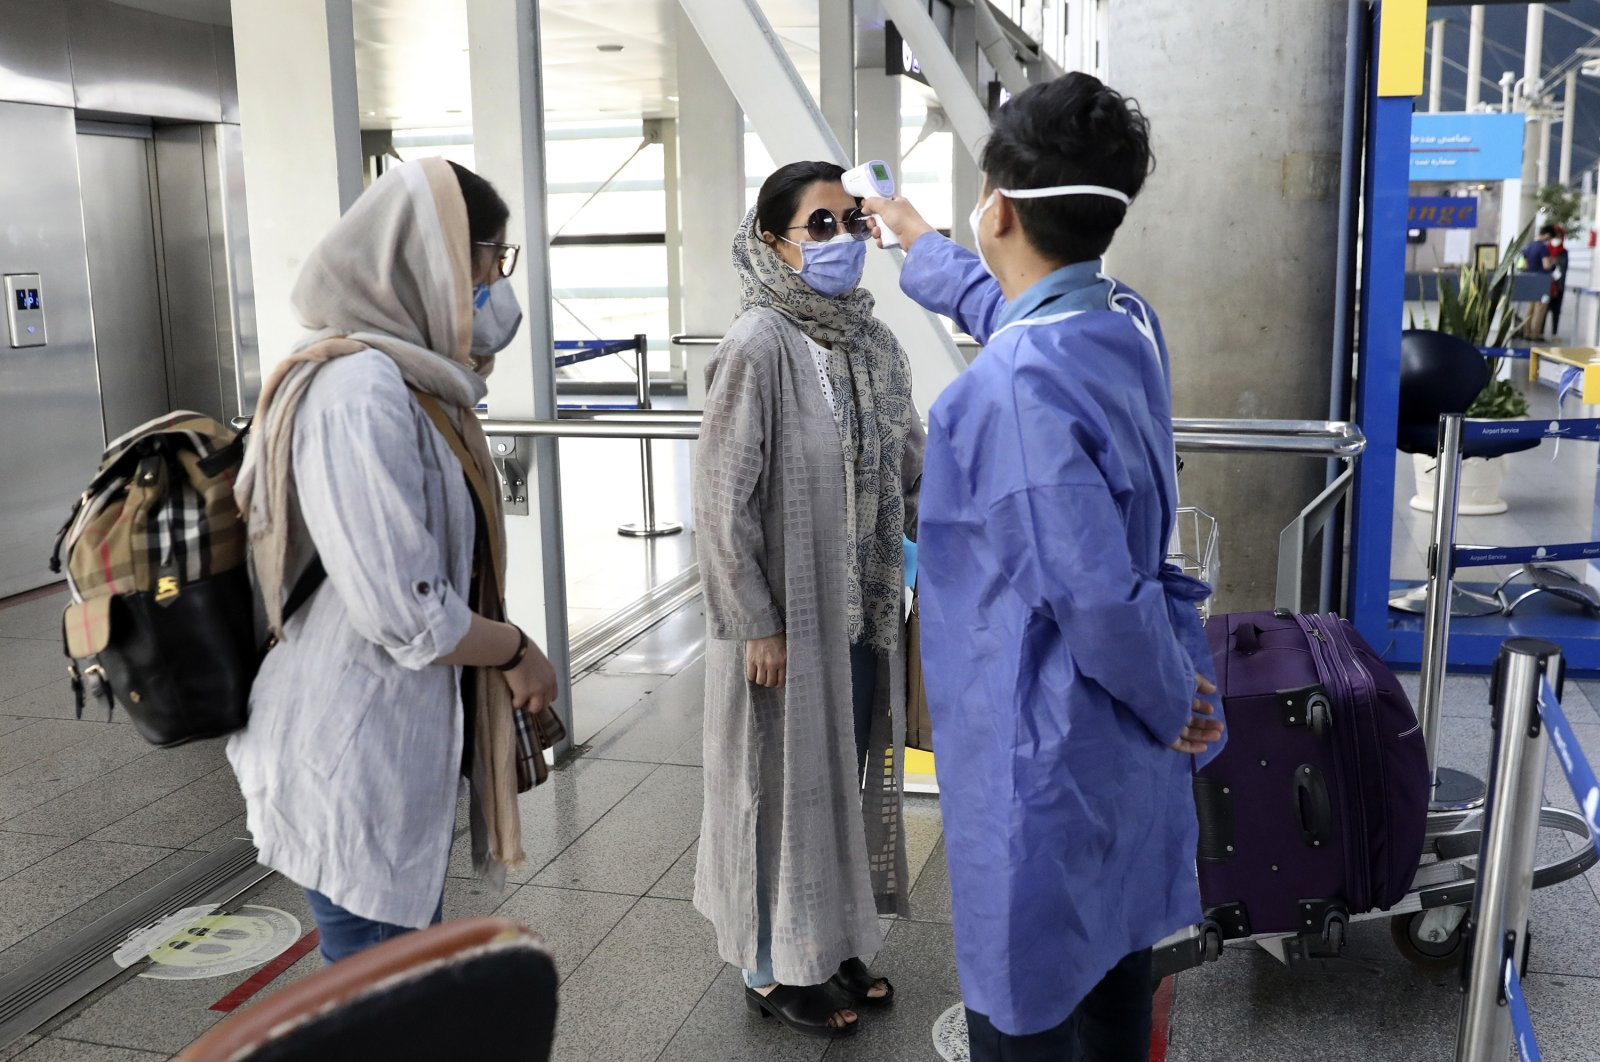 A health worker (R) checks the temperature of passengers to help prevent the spread of the coronavirus upon arrival at the departure terminal of Tehran's Imam Khomeini airport, Iran, July 17, 2020. (AP Photo)